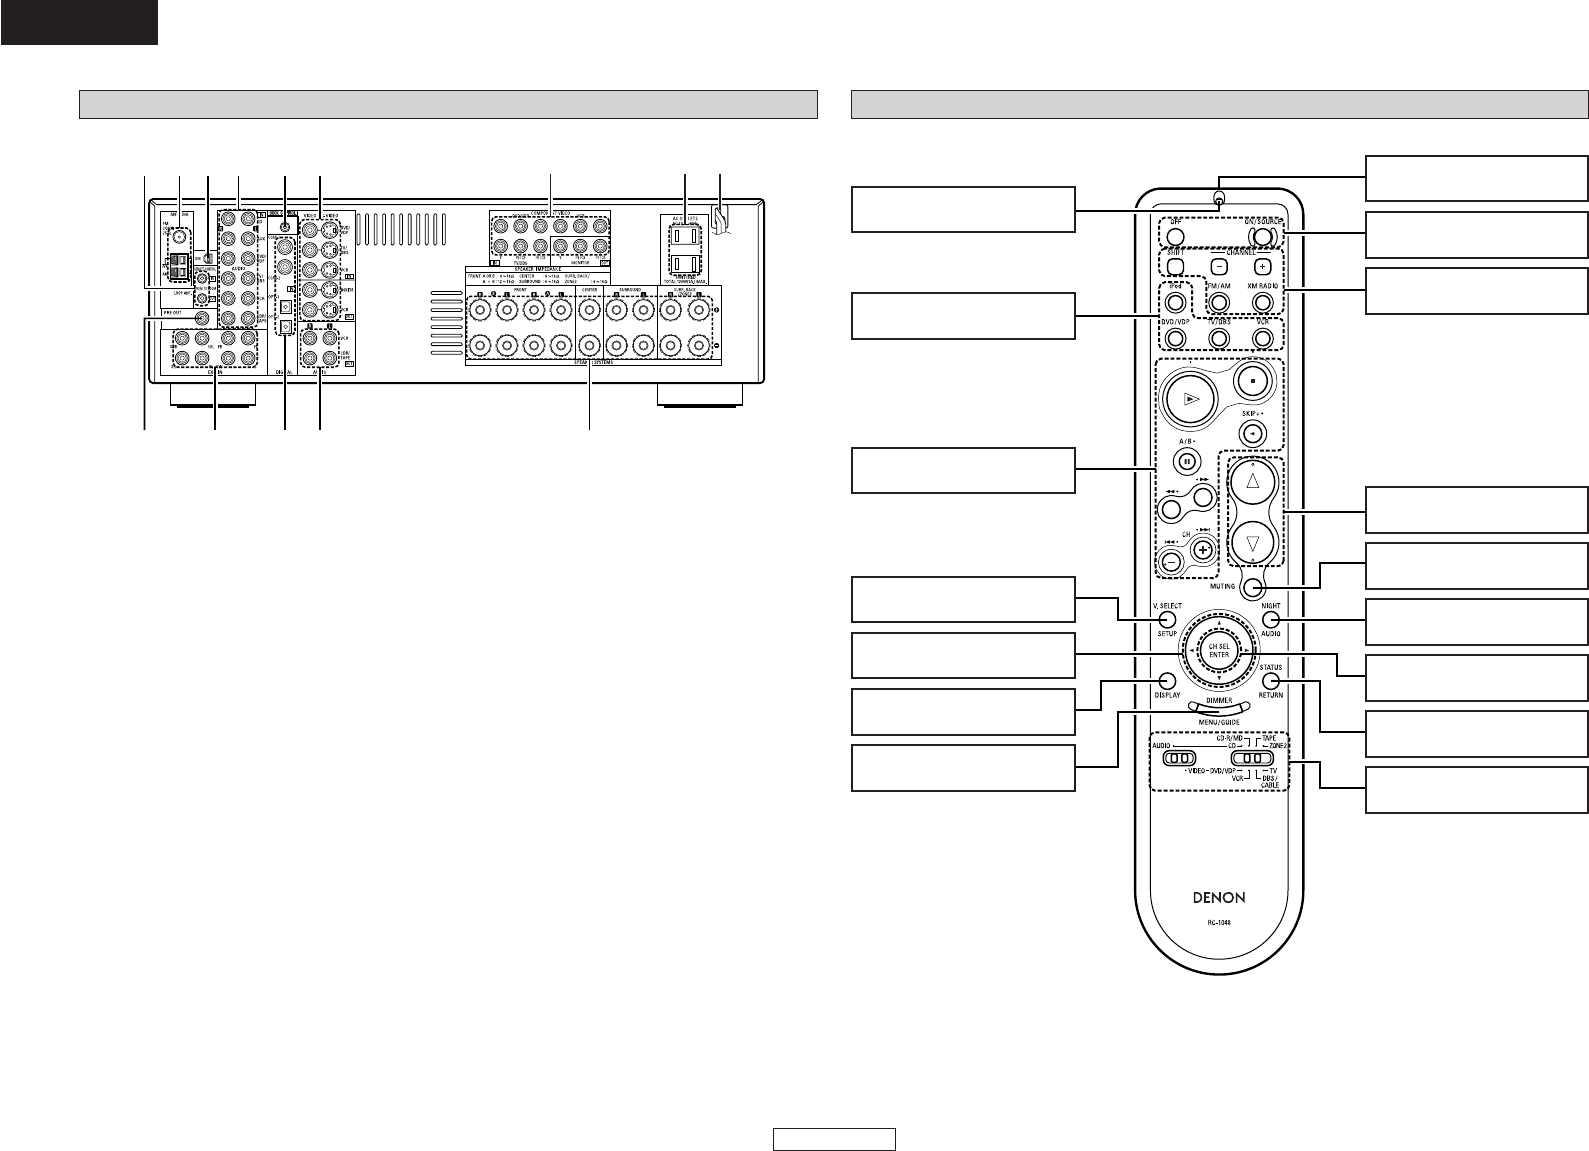 Page 8 of Denon Stereo Receiver AVR-1507 User Guide